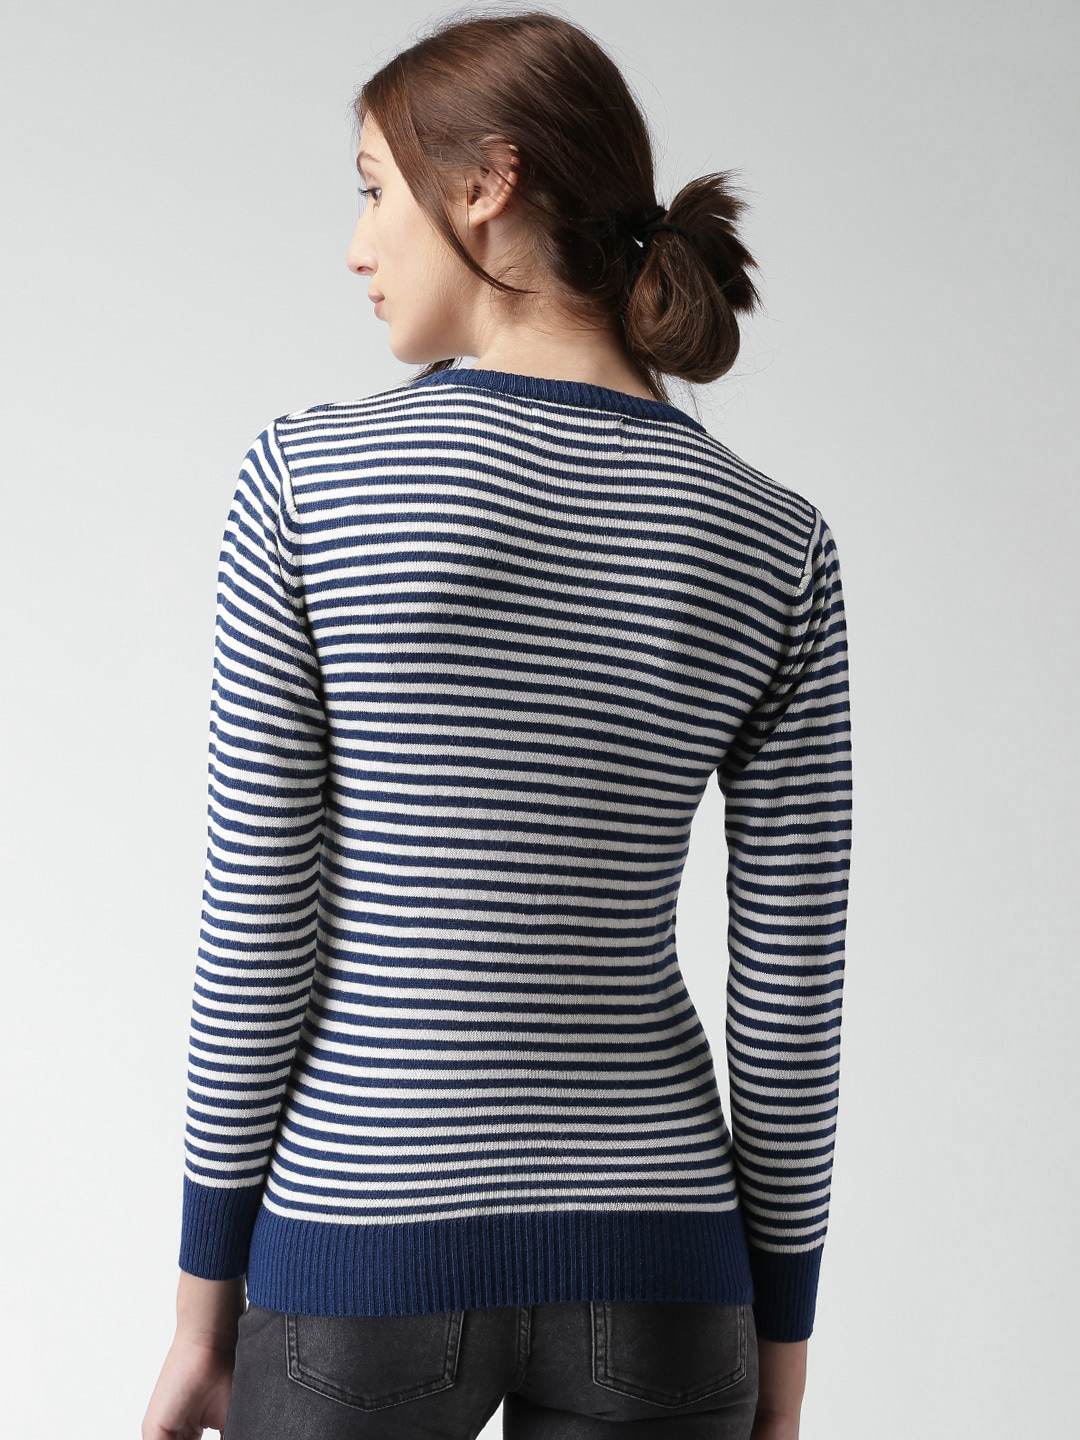 Mast Harbour Stripe Sweaters - Buy Mast Harbour Stripe Sweaters ...